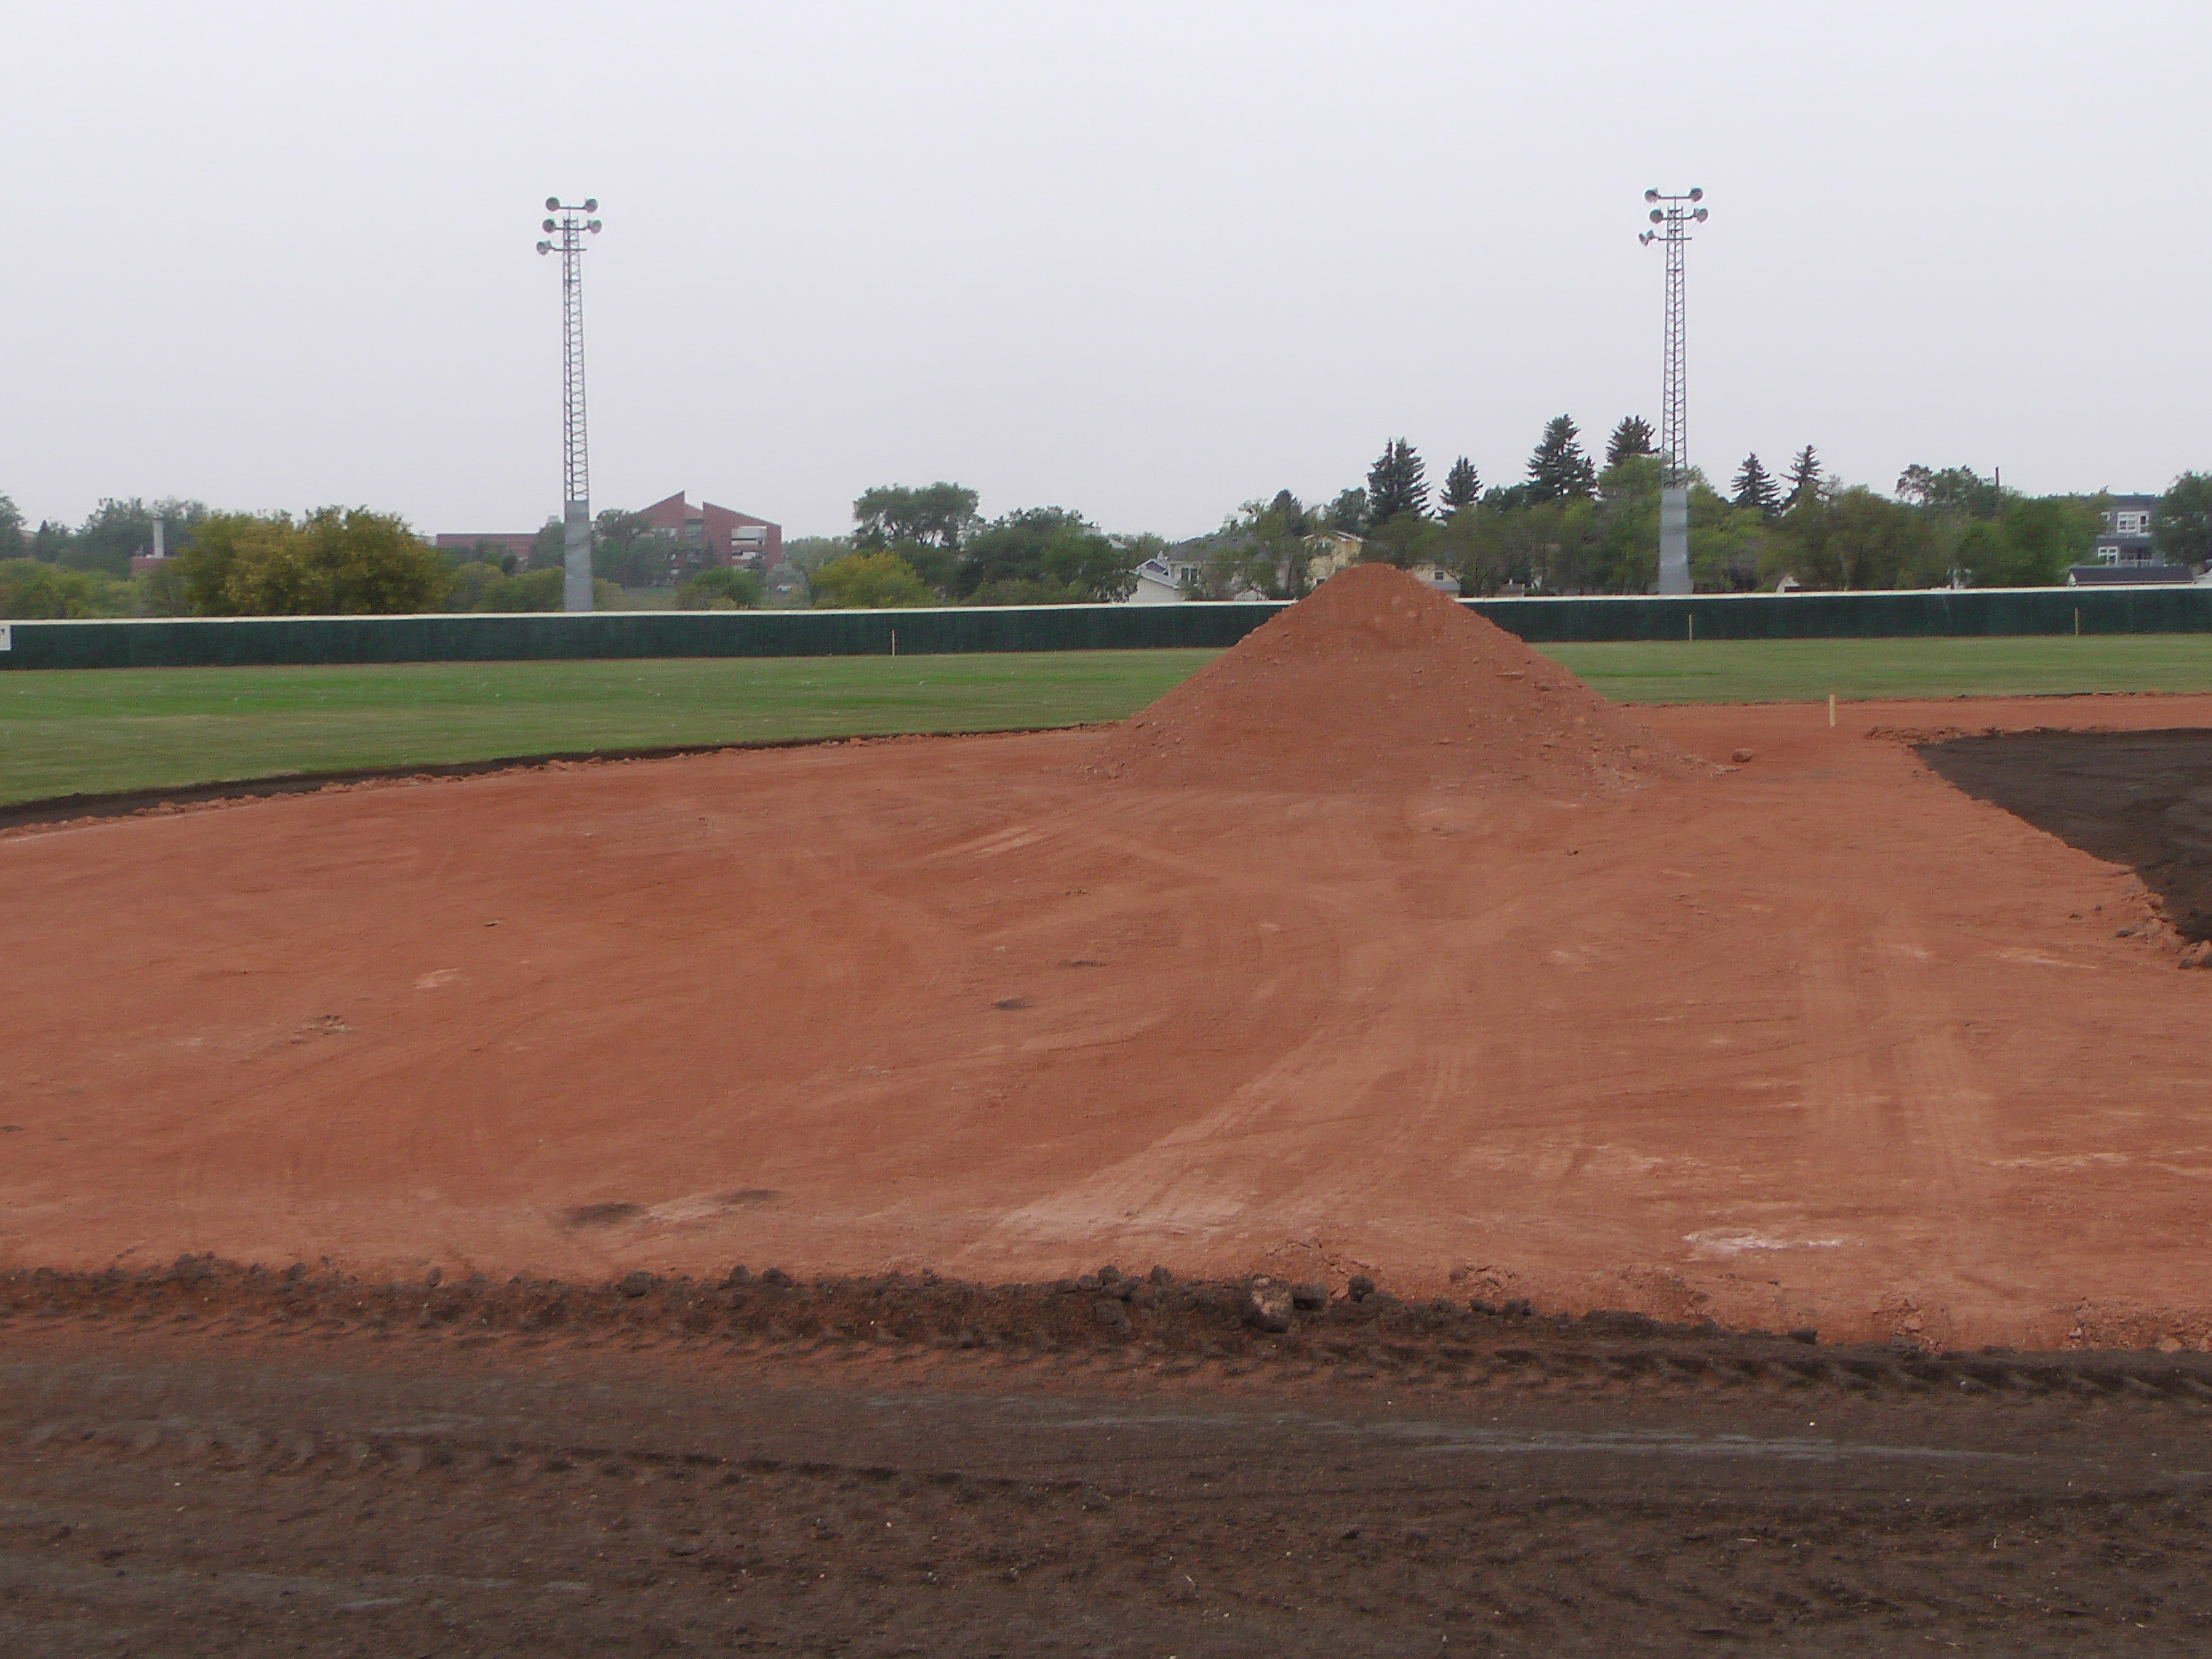 Aug 26/27 2018 Optimist Park Renovations, Continue Leveling Top Soil, More Top Soil added, Digging/Leveling Base Lines/Start Level Shale - Image 19